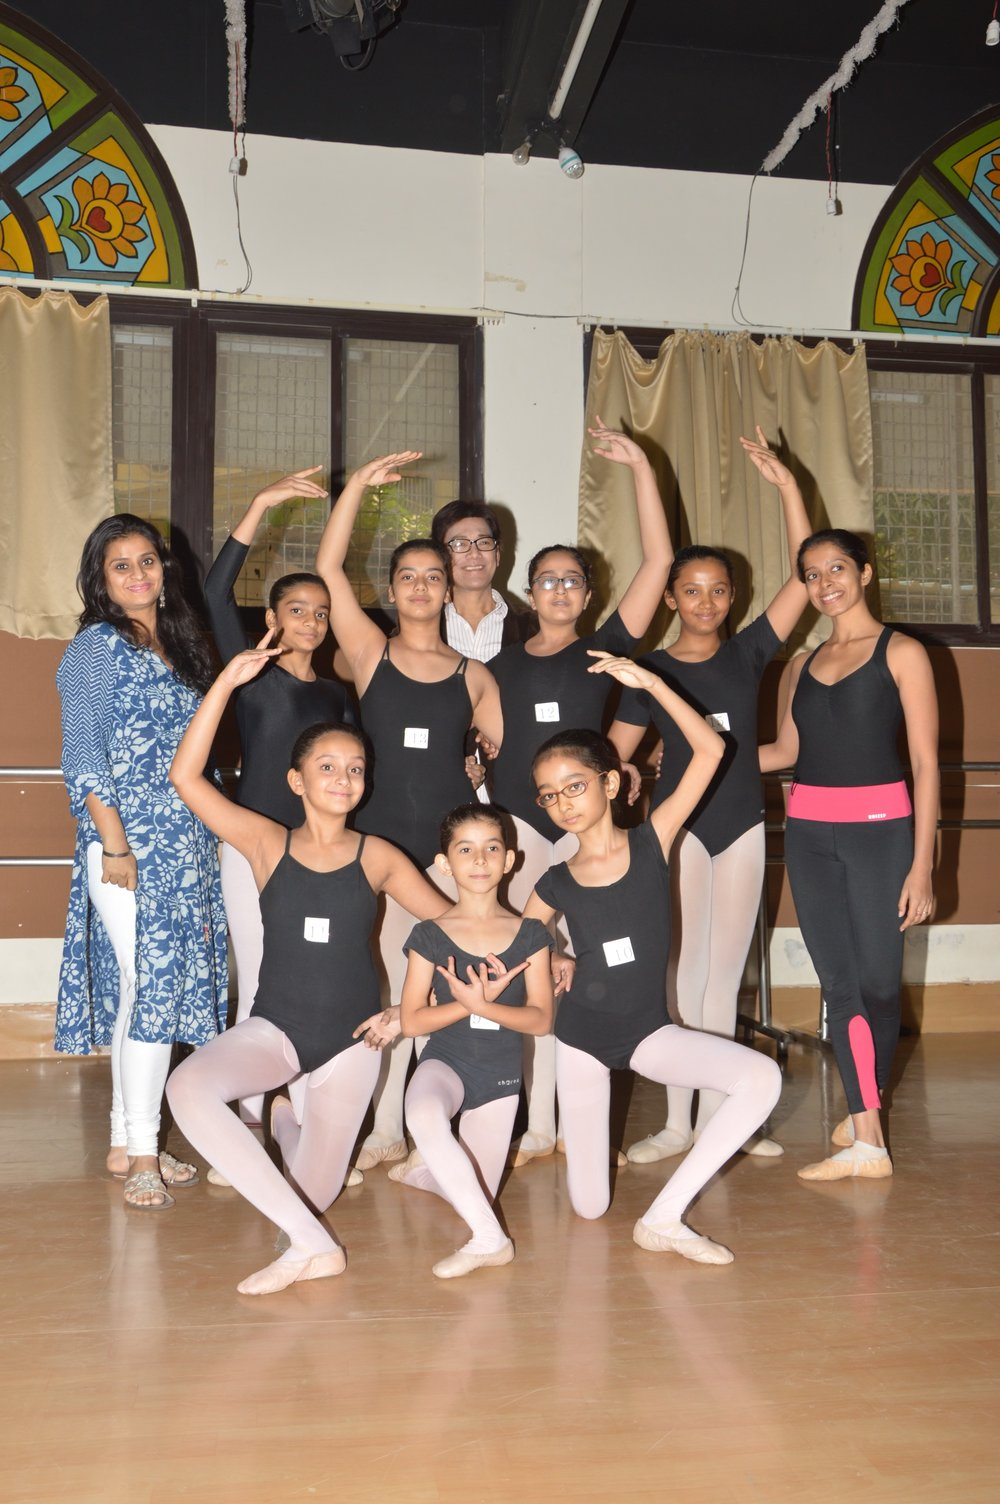 In Mumbai last January, Osias Barroso posed with Rhythmus Happy Feet co-founders and co-artistic directors Swara Patel (in blue) and Deepika Ravindran (with red sash) and students, including Krisha Shah and Eesha Karnani.